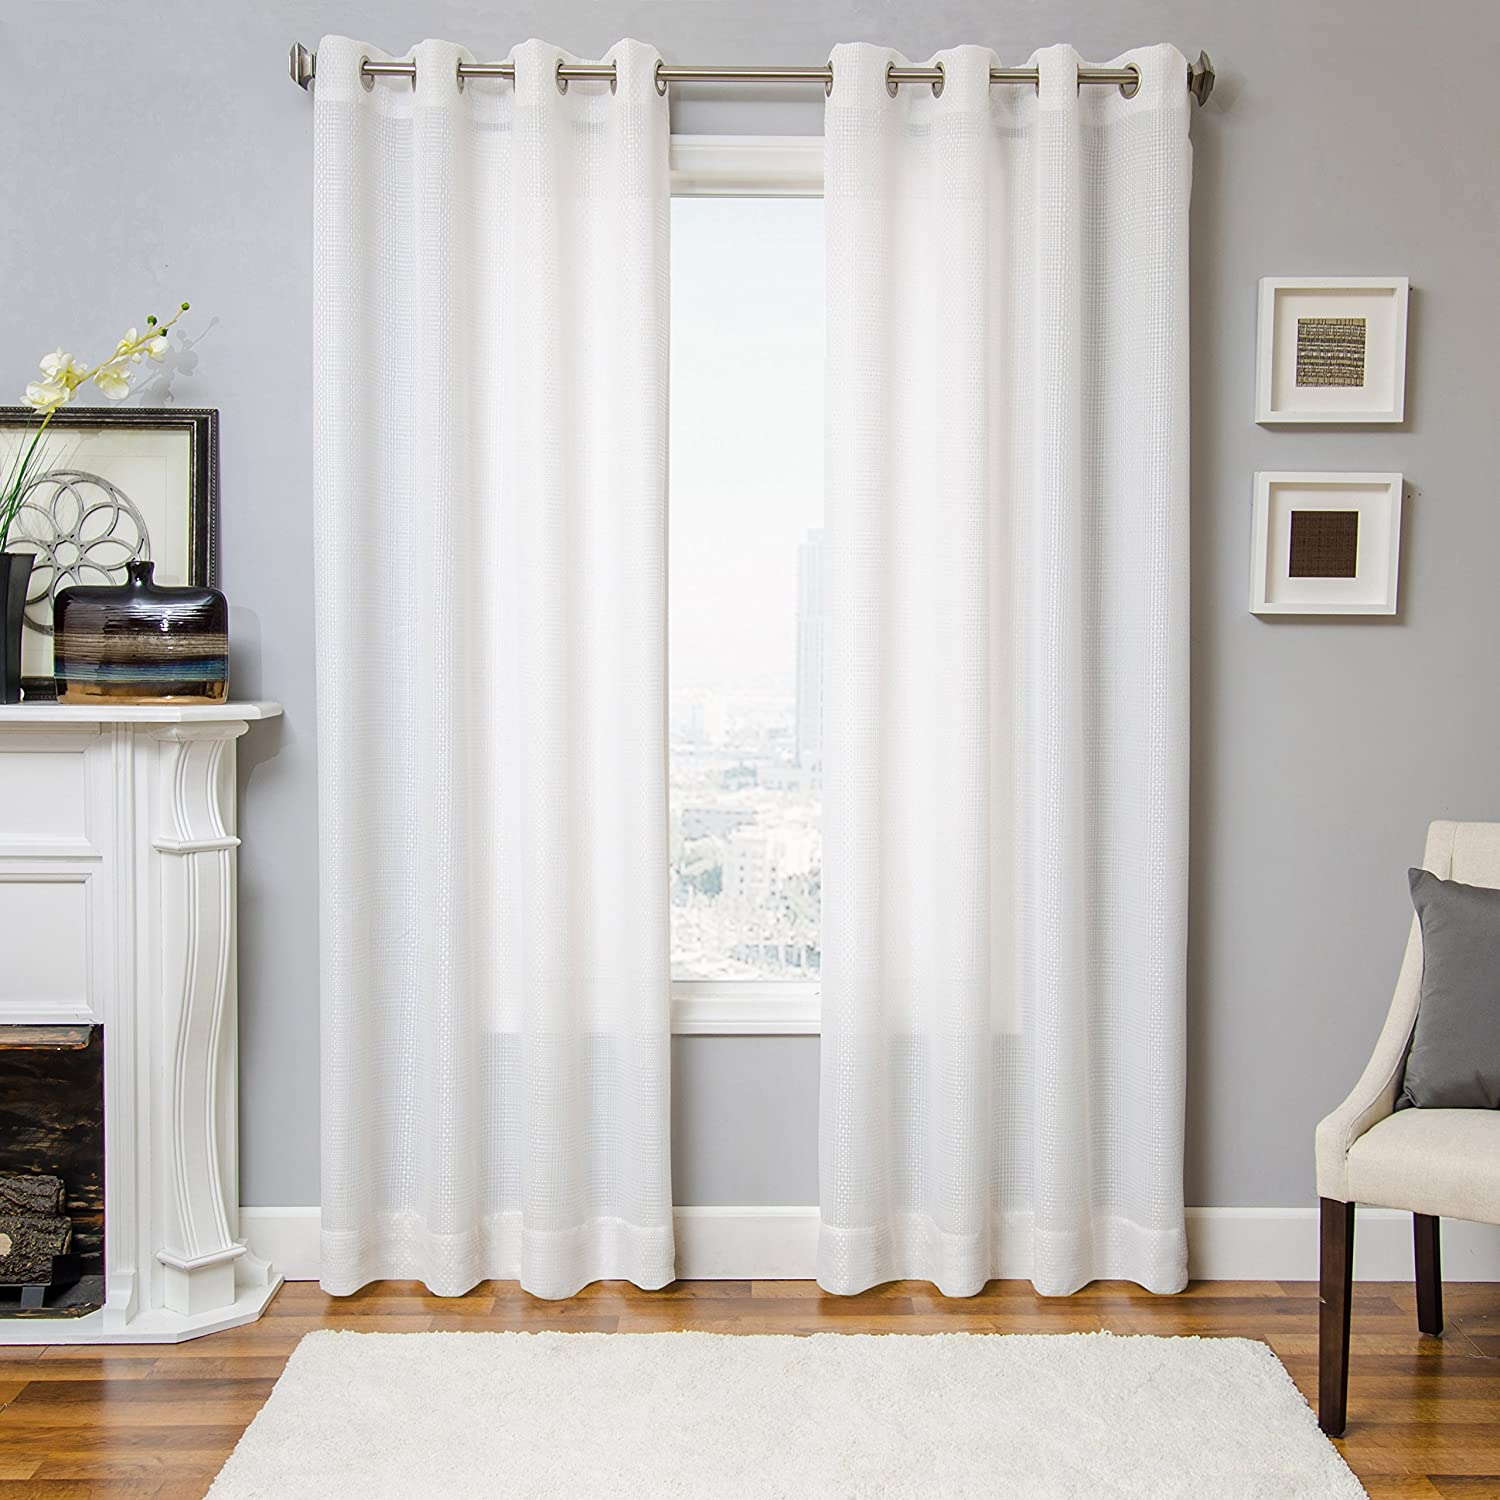 Amazon com softline belmar series modern window treatment curtain drape panel with wide weave sheer design grommet top 55 x 84 in white home